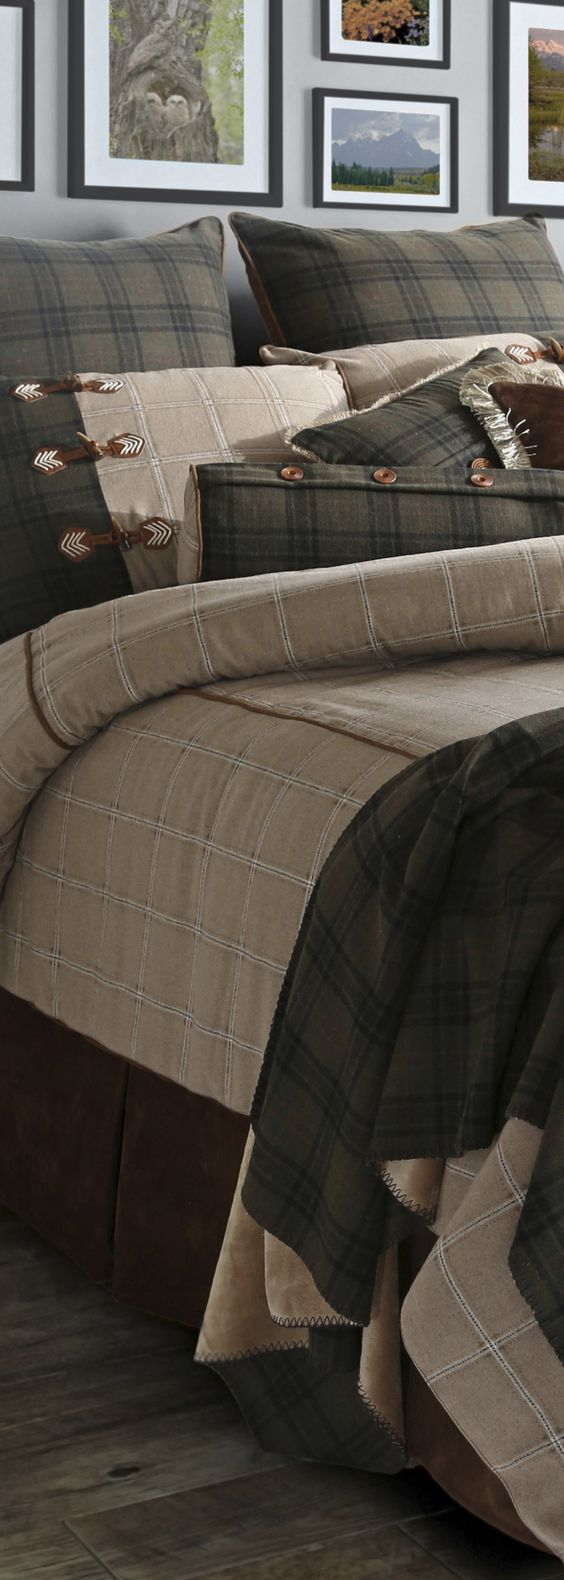 muted mixed plaid bedding.jpg